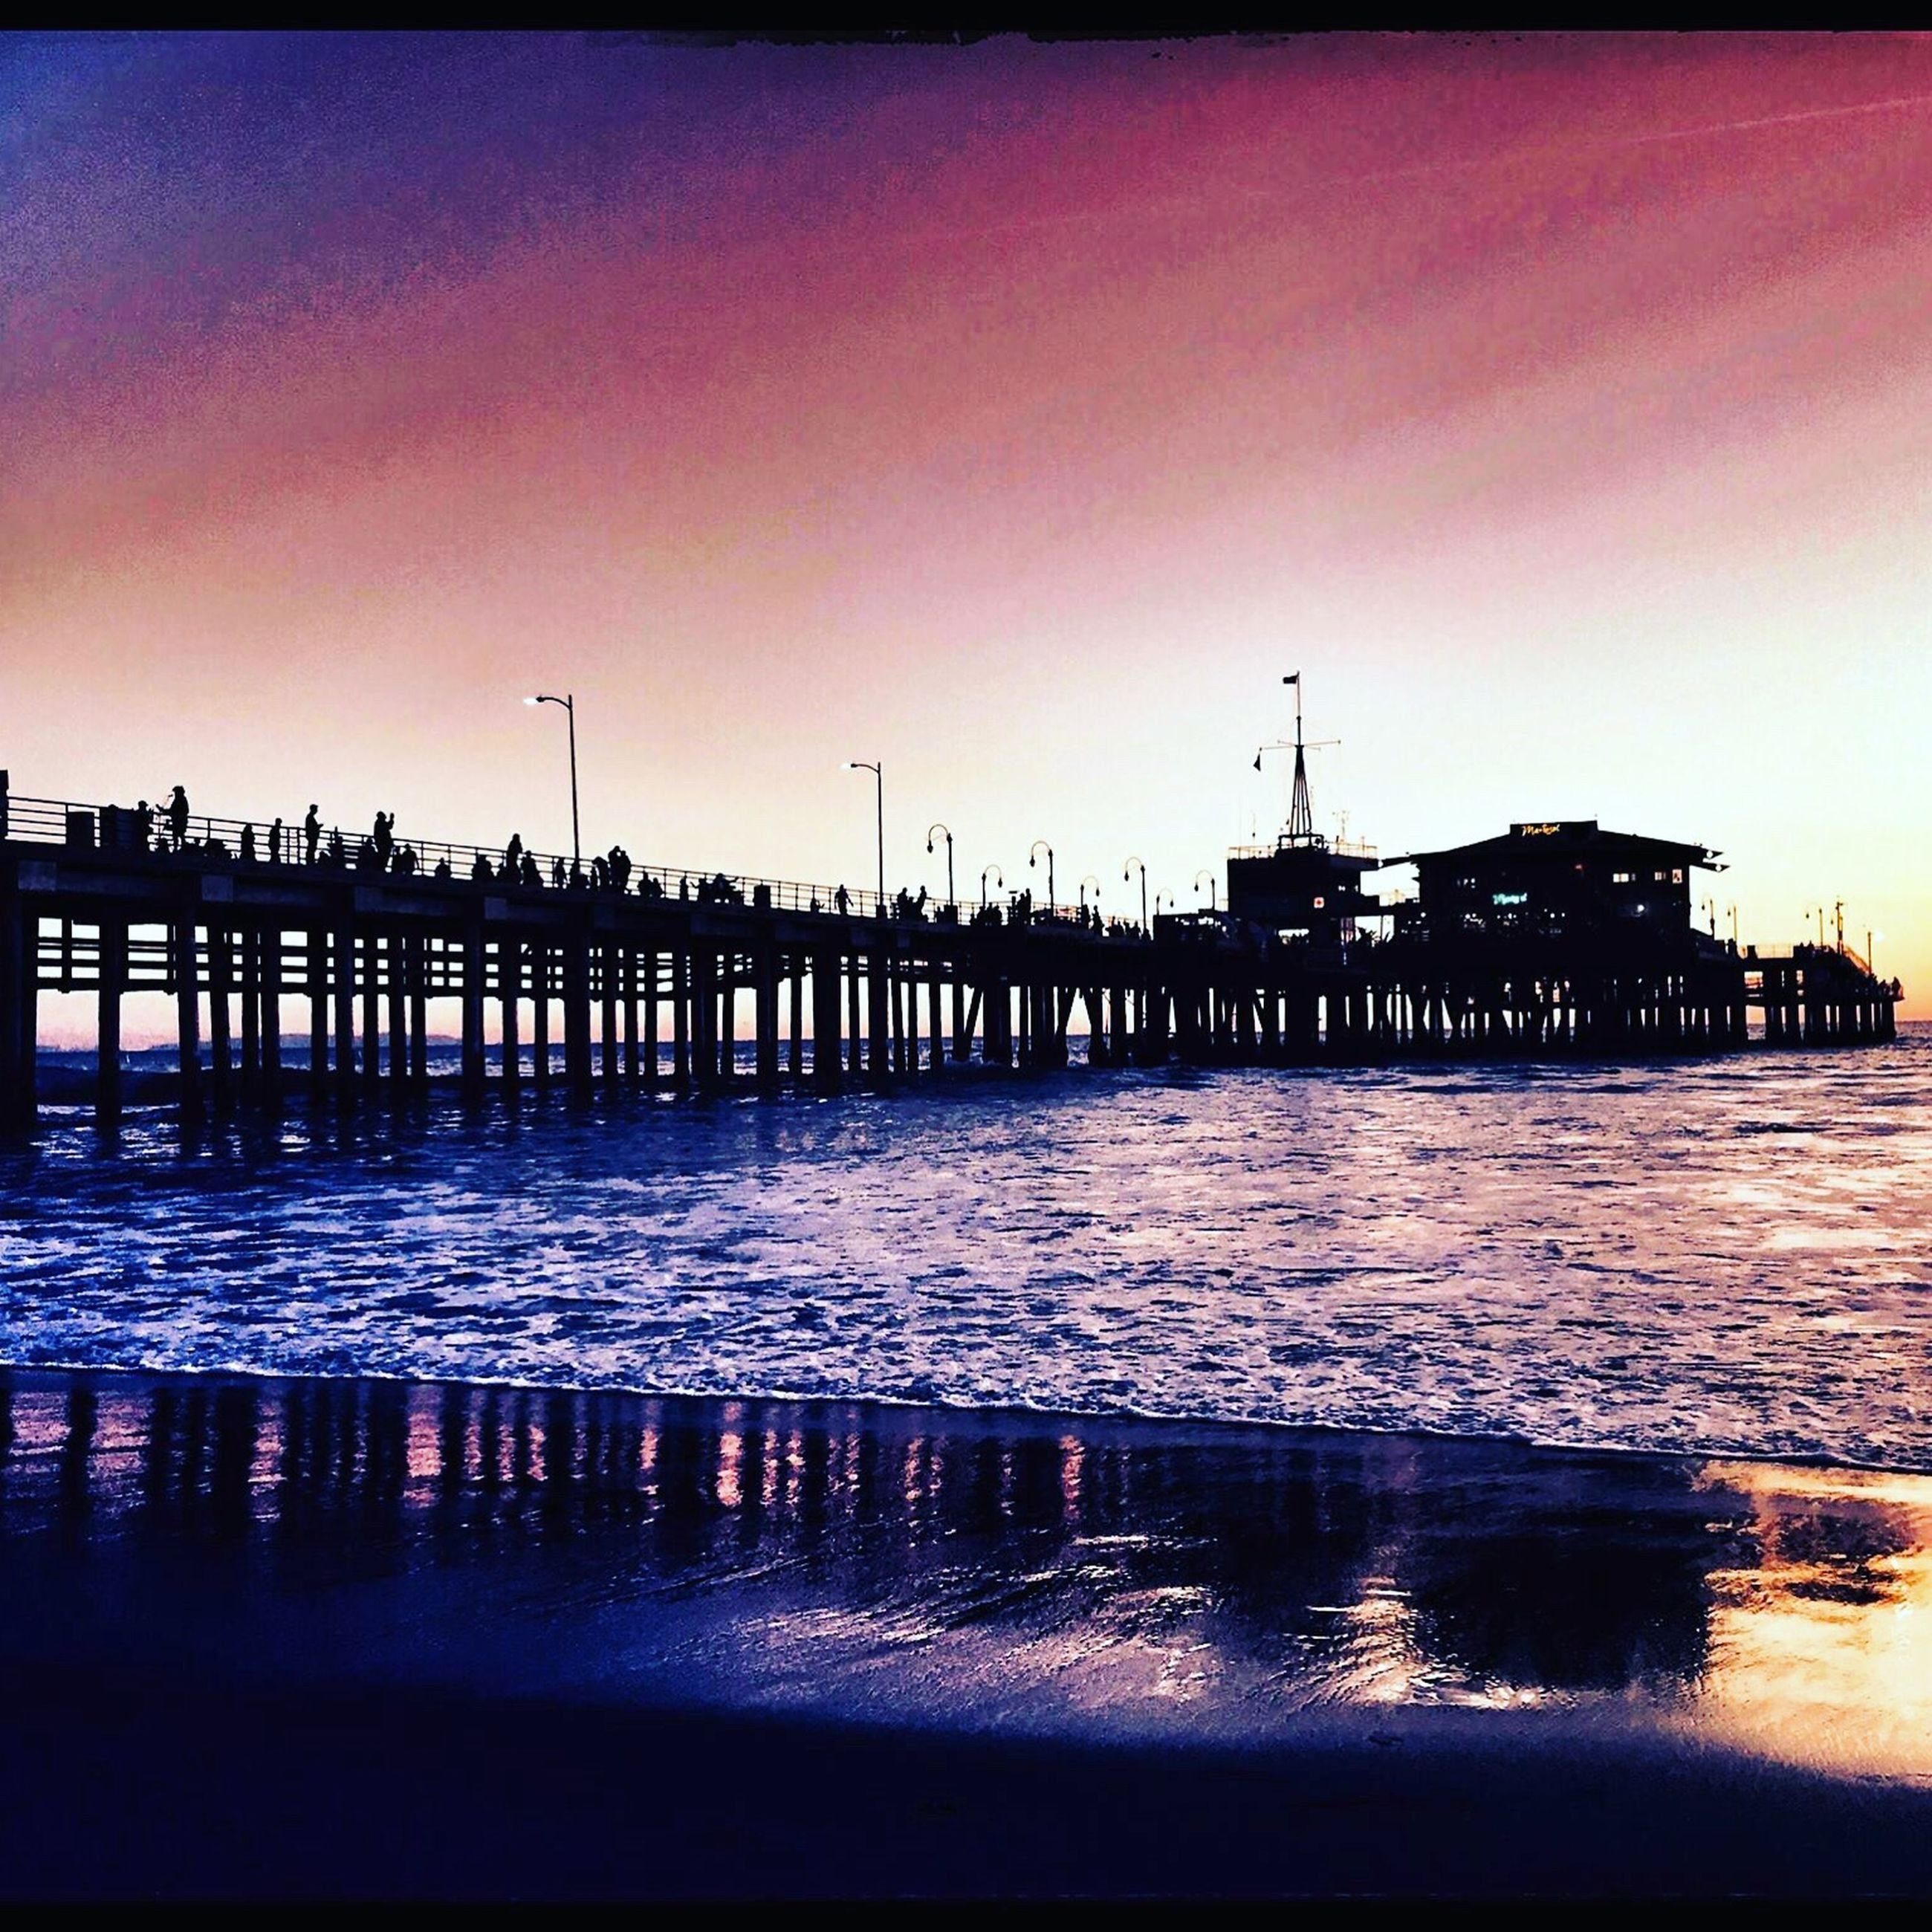 water, sunset, built structure, architecture, silhouette, sea, waterfront, pier, clear sky, building exterior, dusk, sky, transfer print, auto post production filter, reflection, river, copy space, tranquil scene, tranquility, scenics